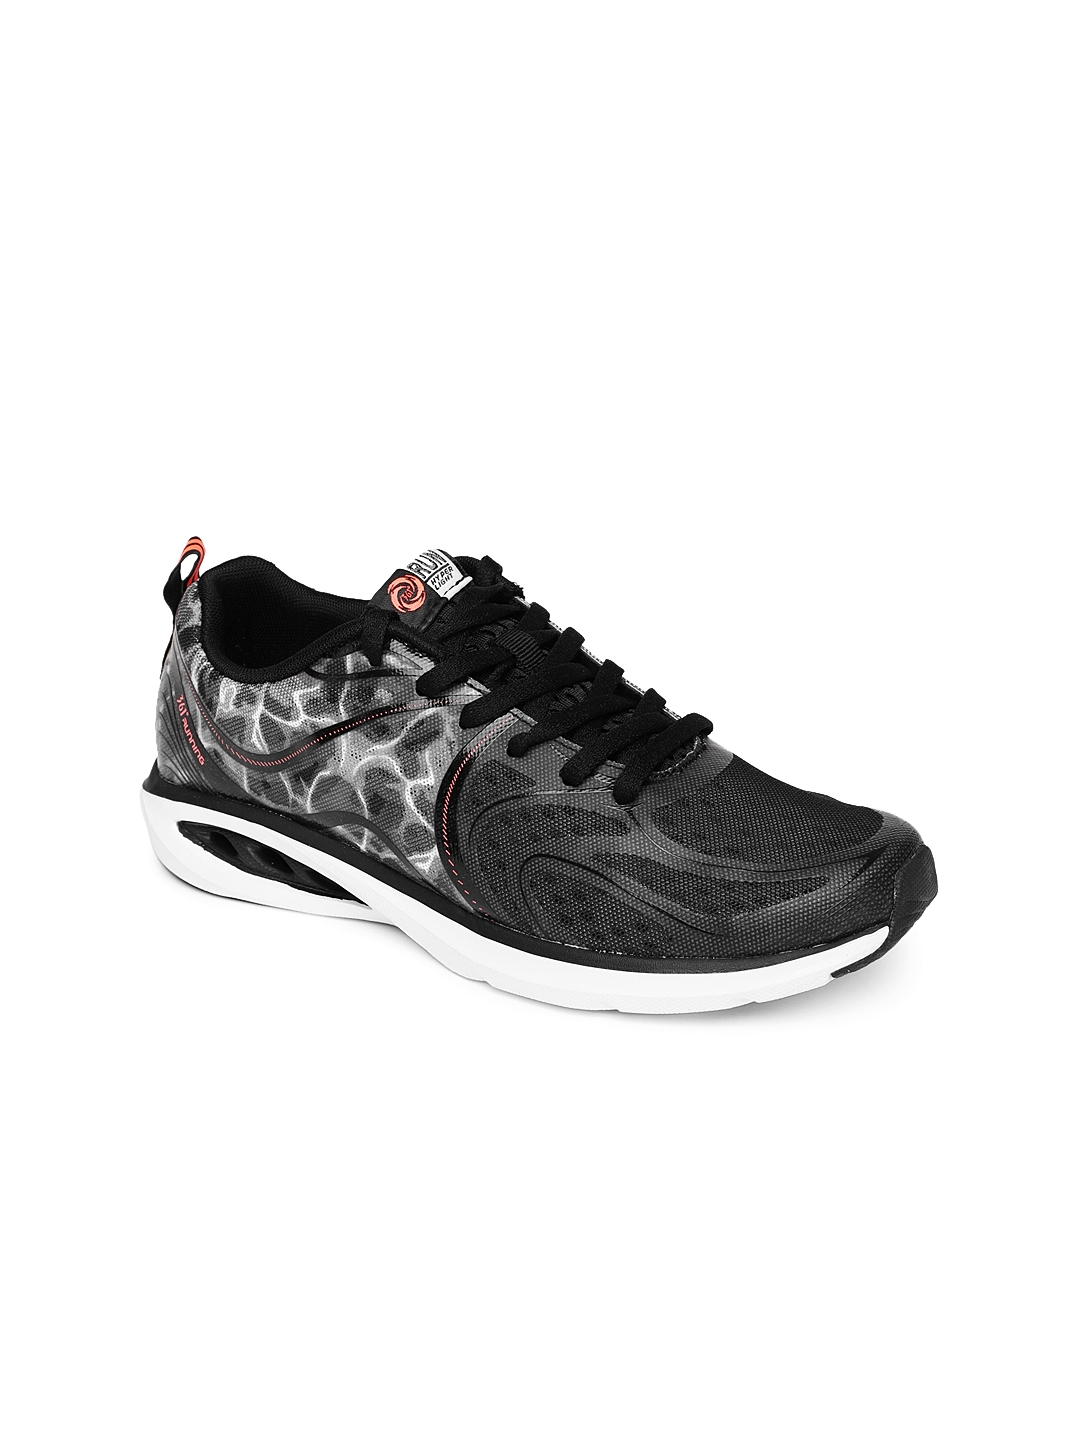 f2405e21780 Buy 361 Degree Women Black Printed Lightweight Running Shoes ...